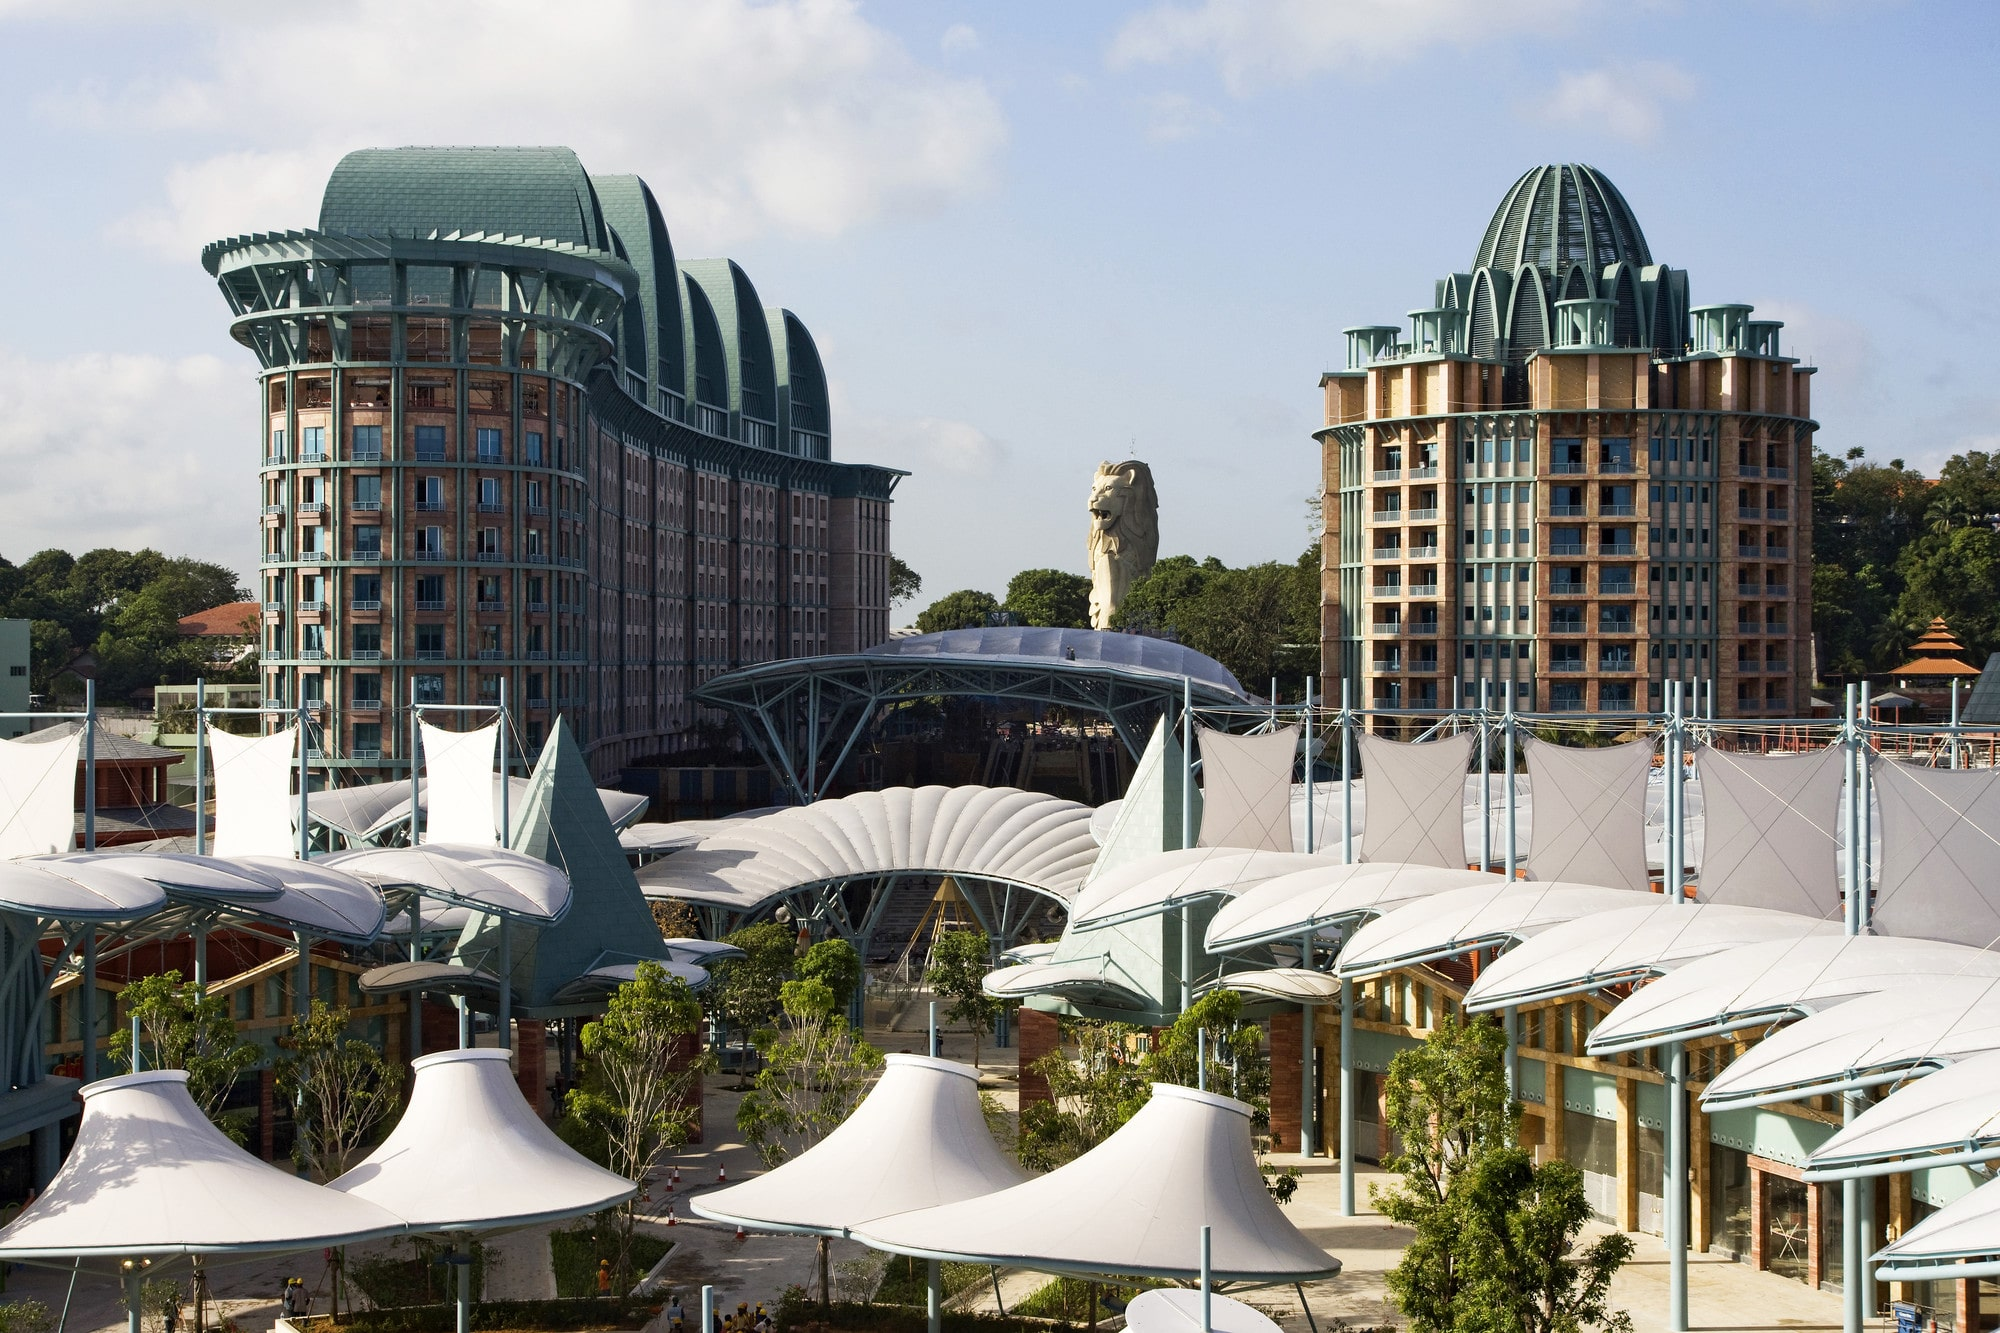 مایکل گریوز Resorts World Sentosa 2